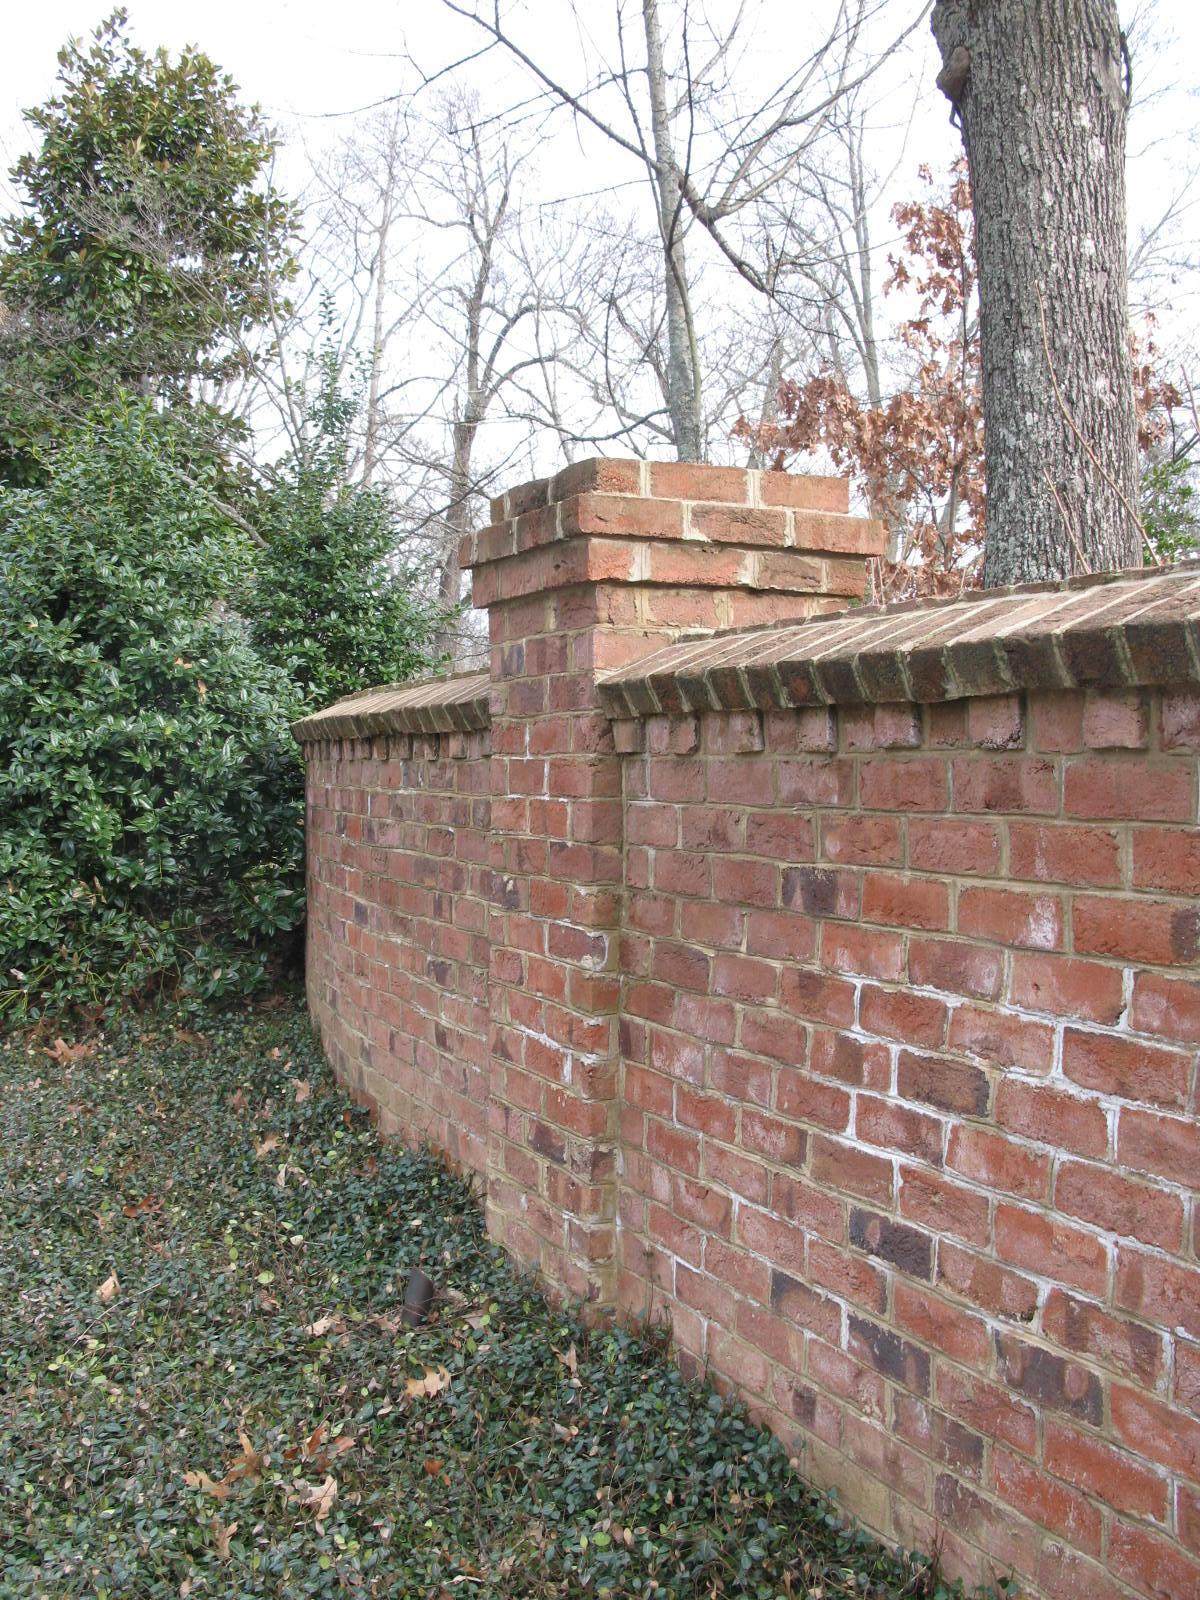 20 brick wall designs images red brick wall tile brick for Designs for brick garden walls